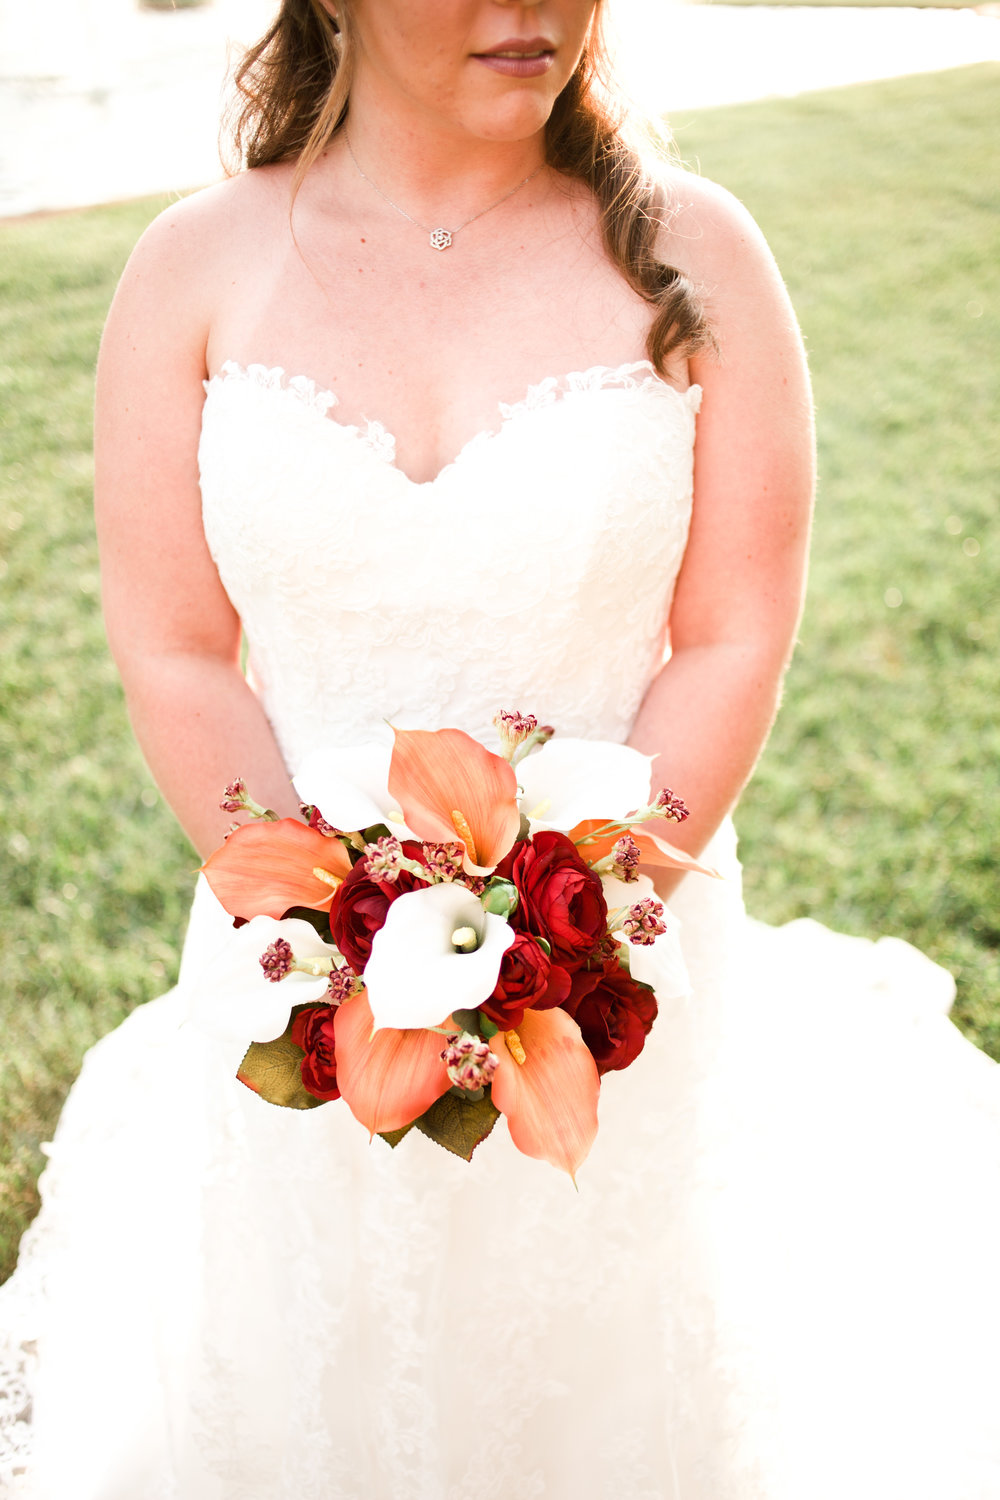 gabbie_bridal_poured_out_photography-63.jpg